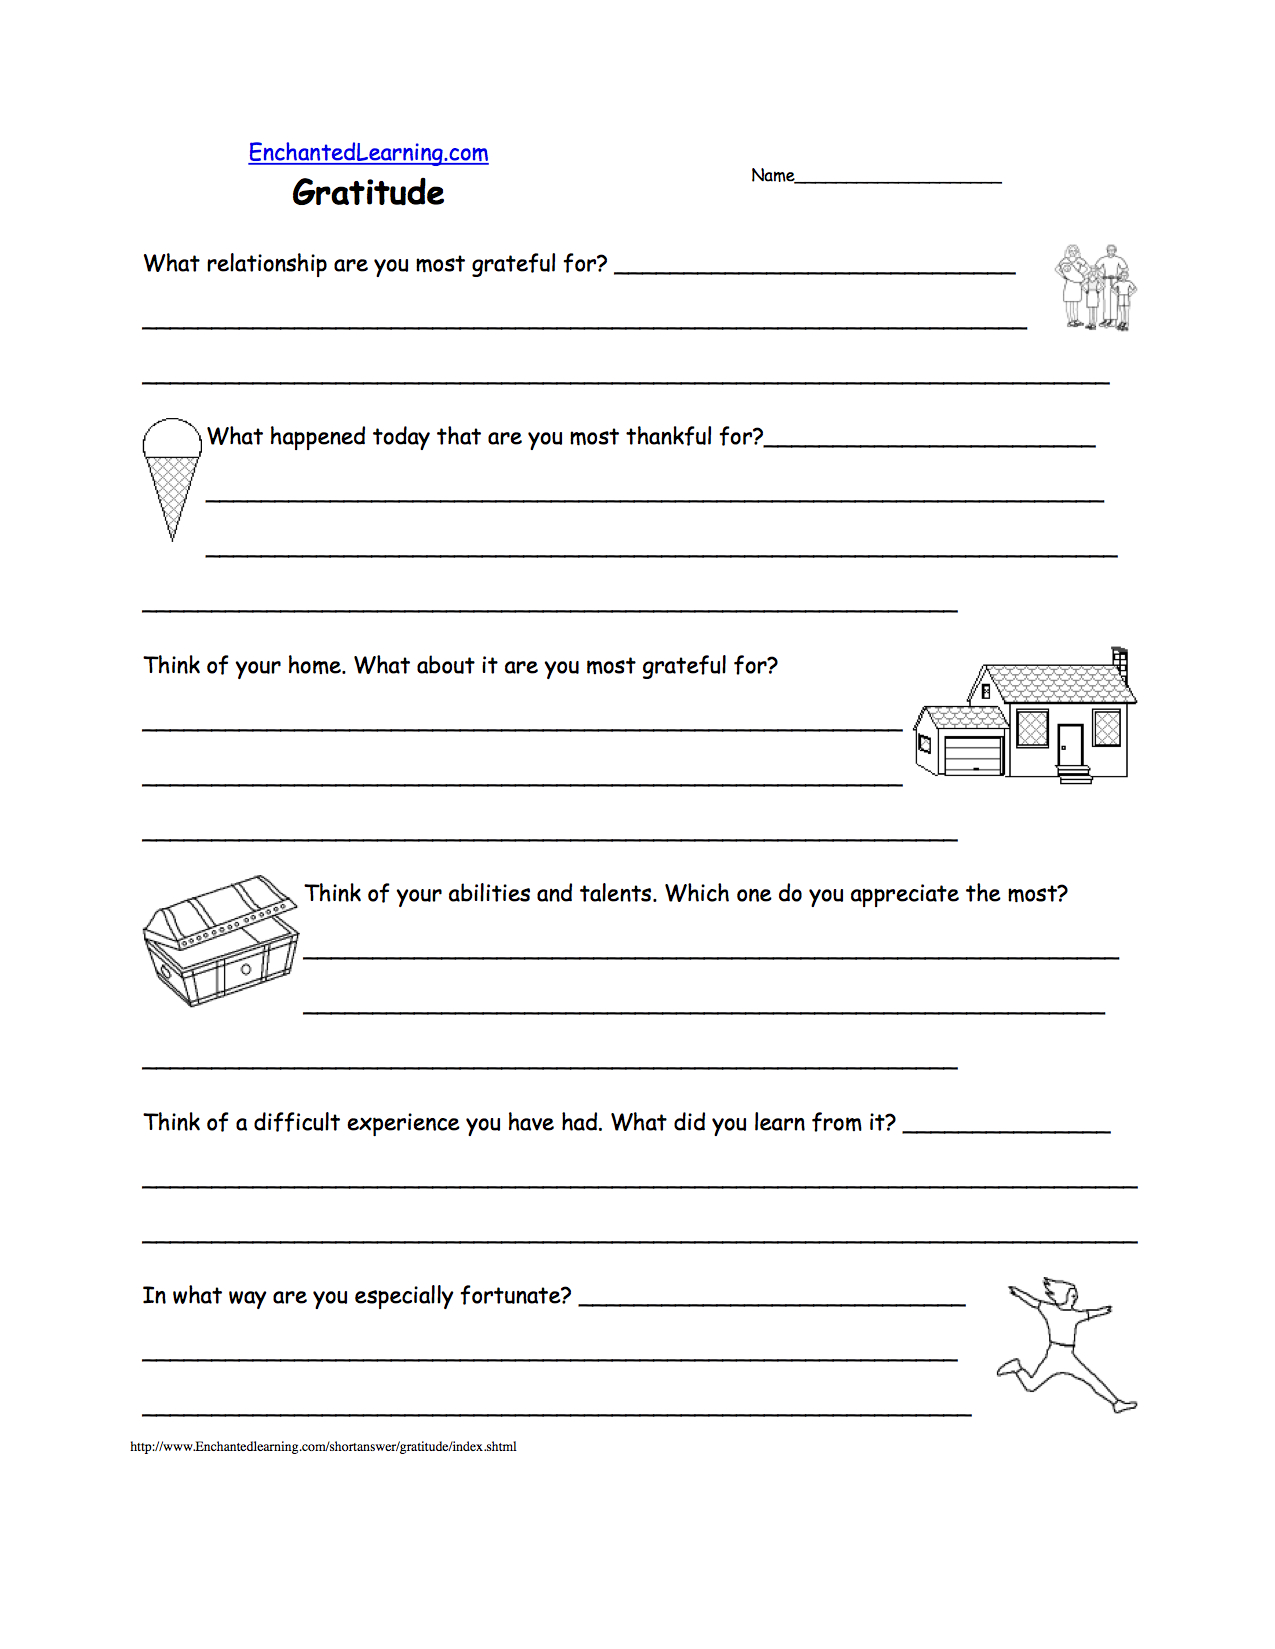 Gratitude  Short Answer Worksheet  Enchantedlearning Along With Gratitude Activities Worksheets